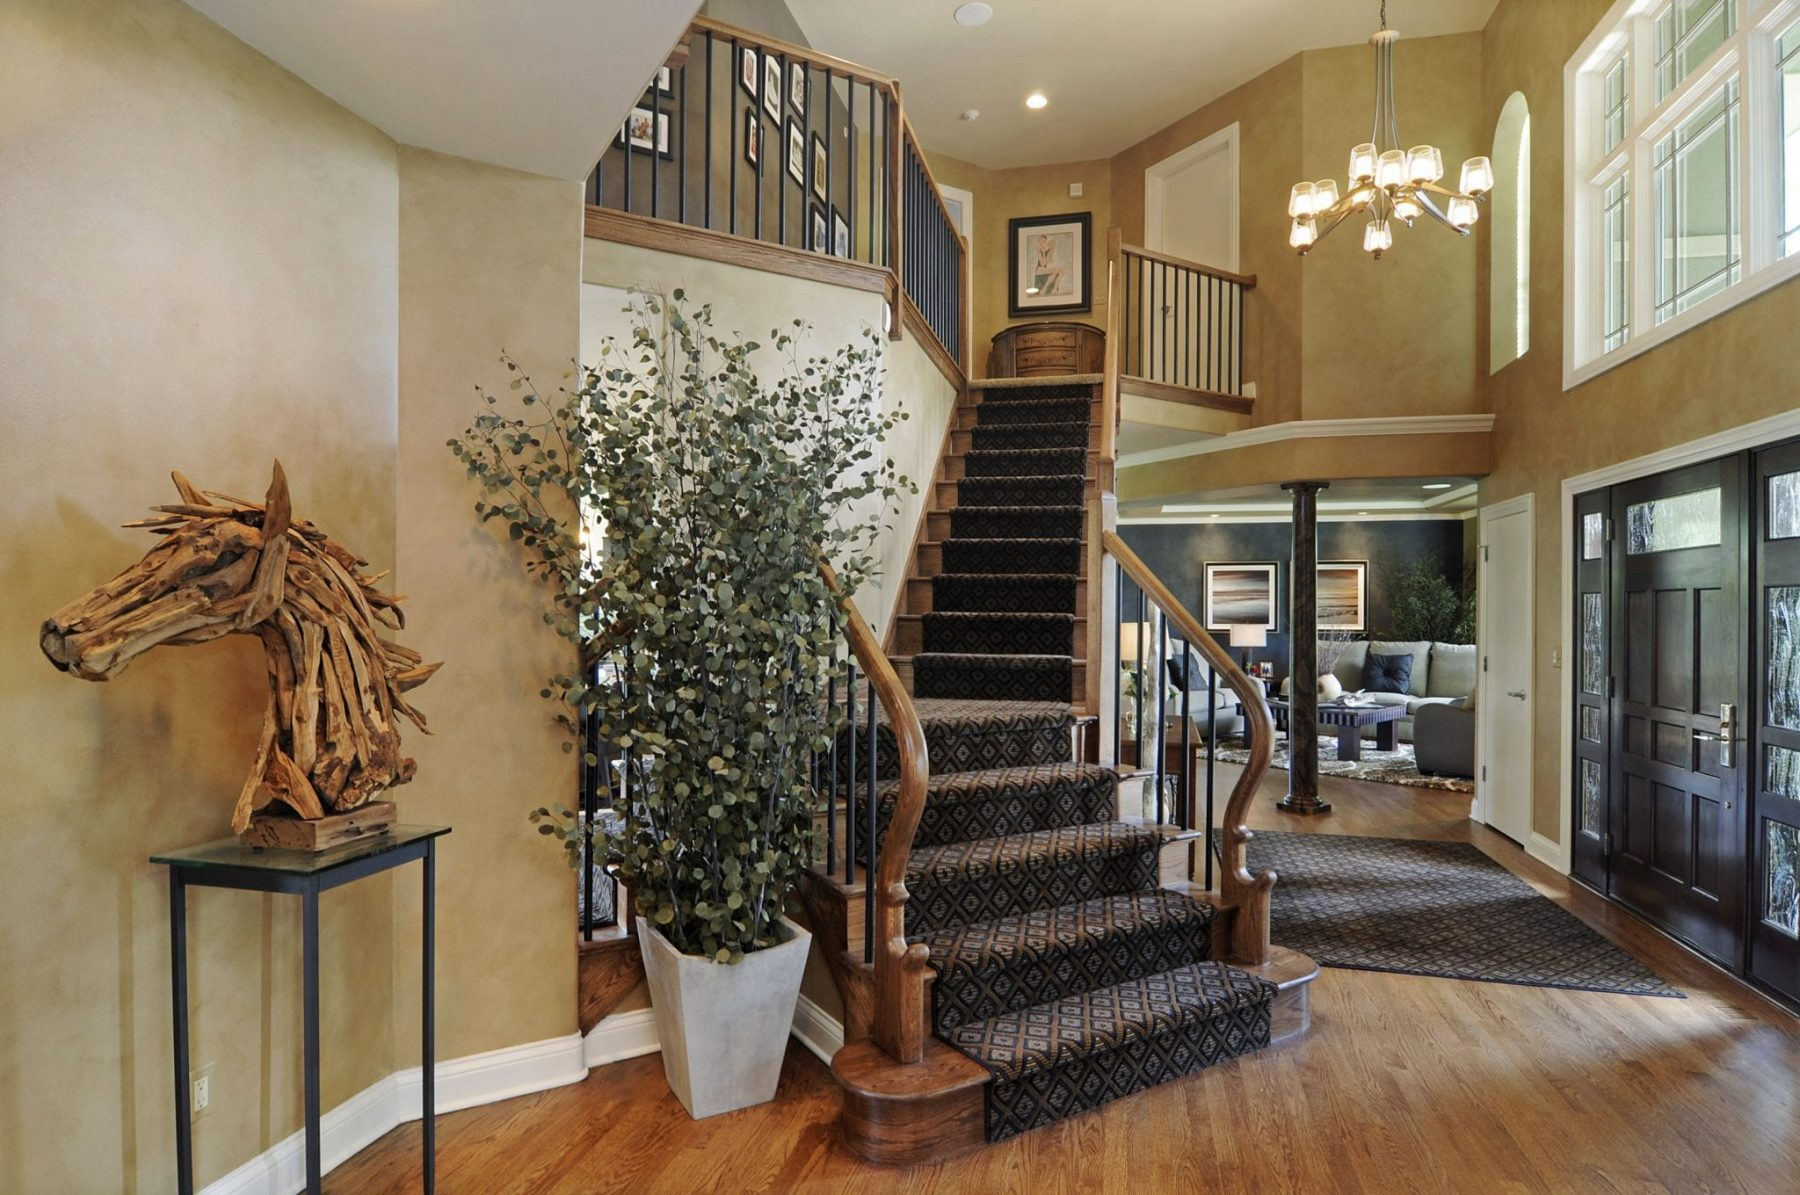 The Entryway to the Home - Home Renovations   Interior Designer Illinois